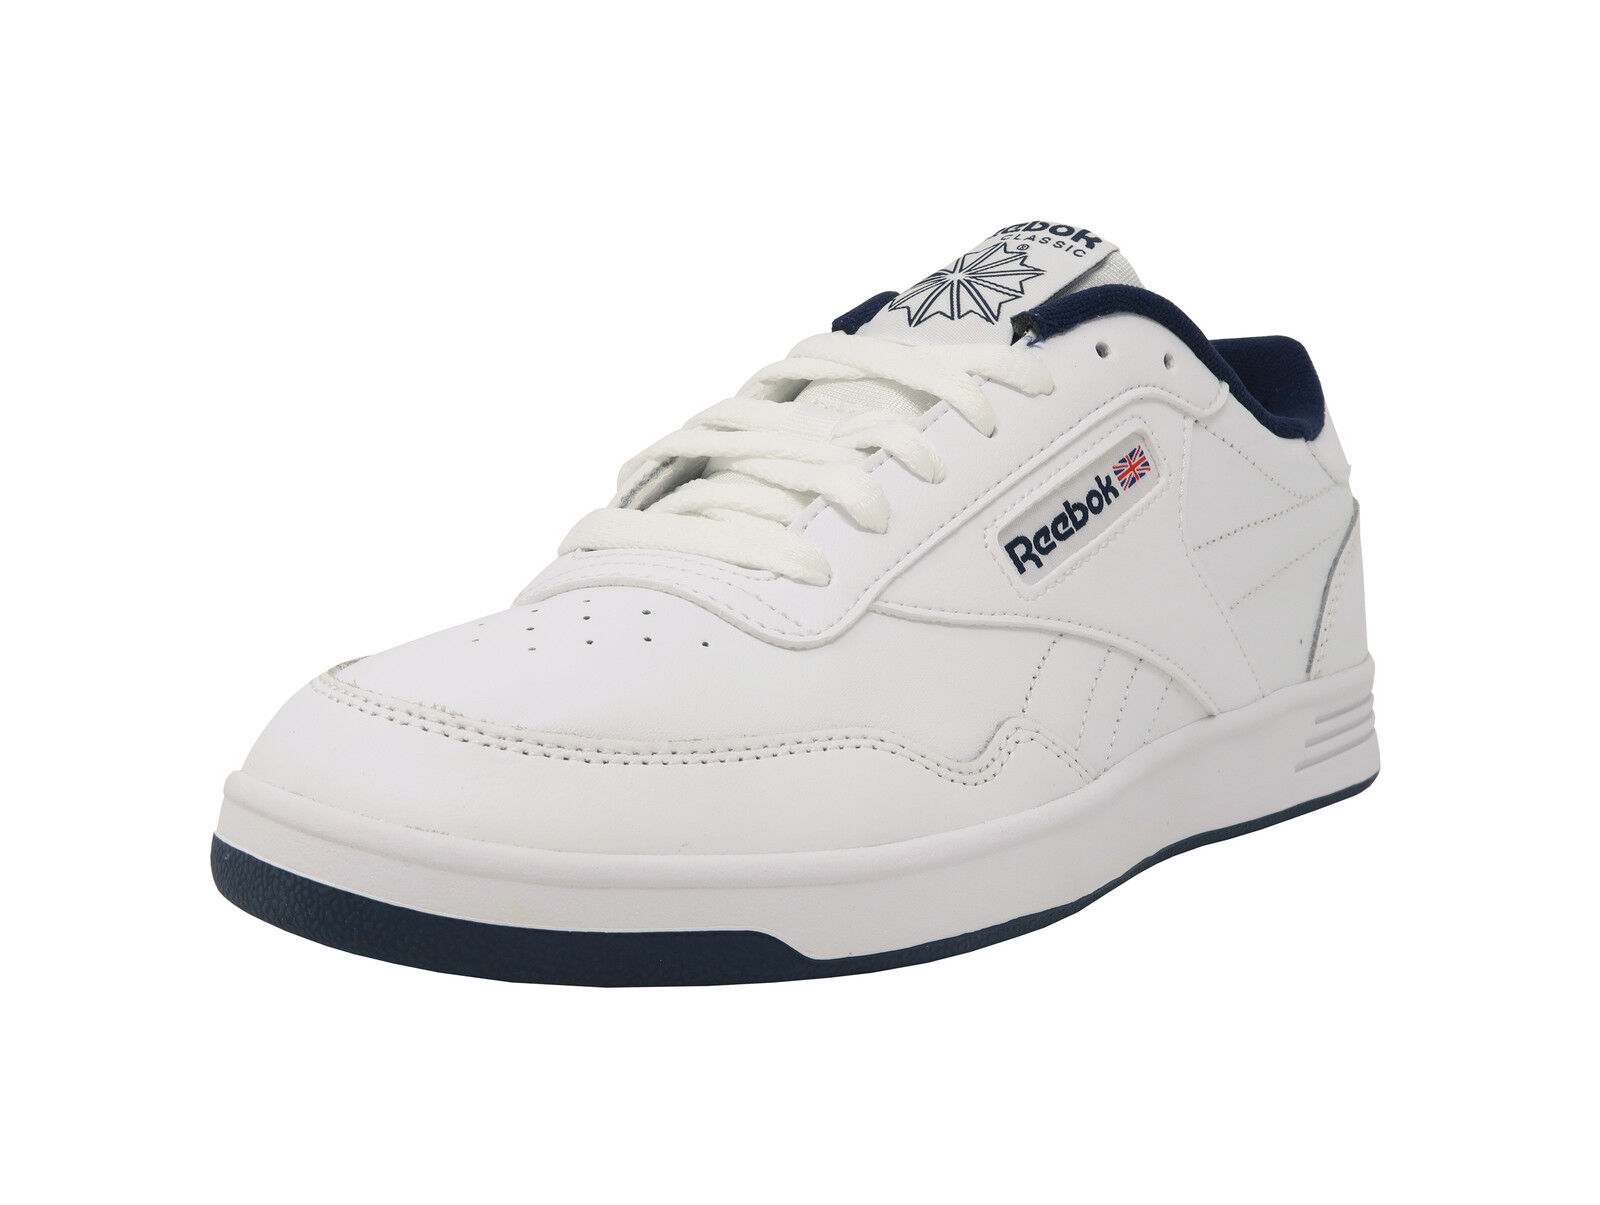 REEBOK Club MemTech MemTech MemTech 2.0 Classic White Navy Blue Athletic Sneakers Men Shoes ad8a95